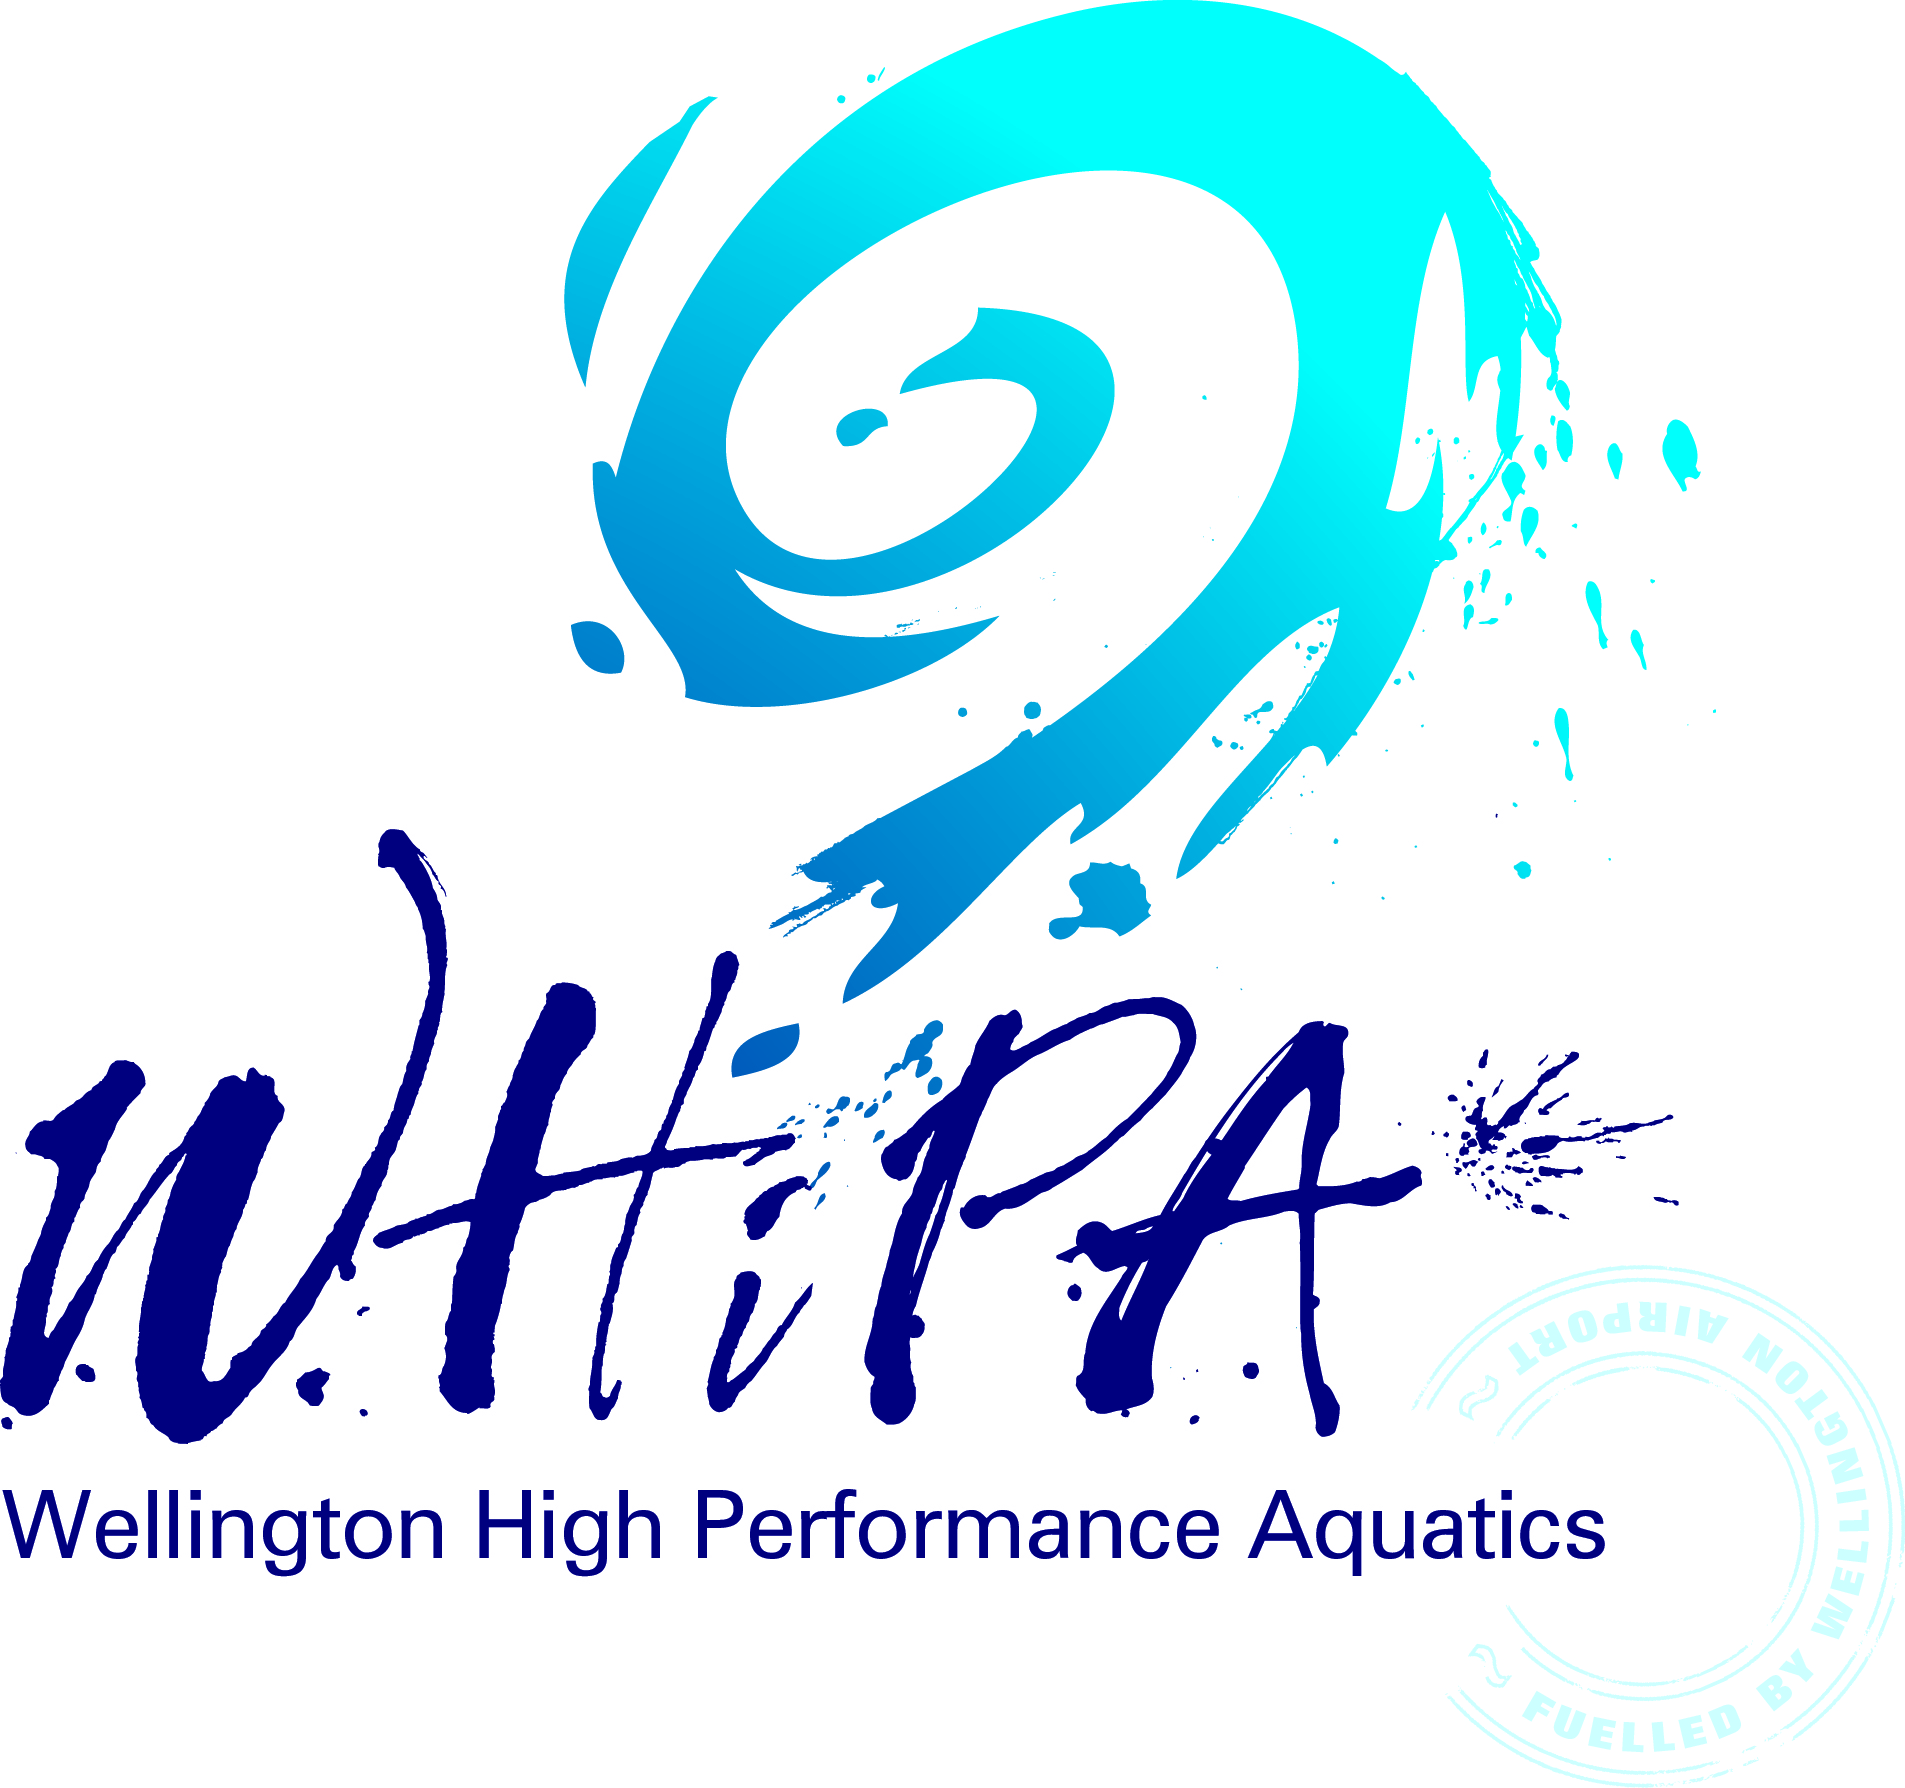 Wellington High Performance Aquatics